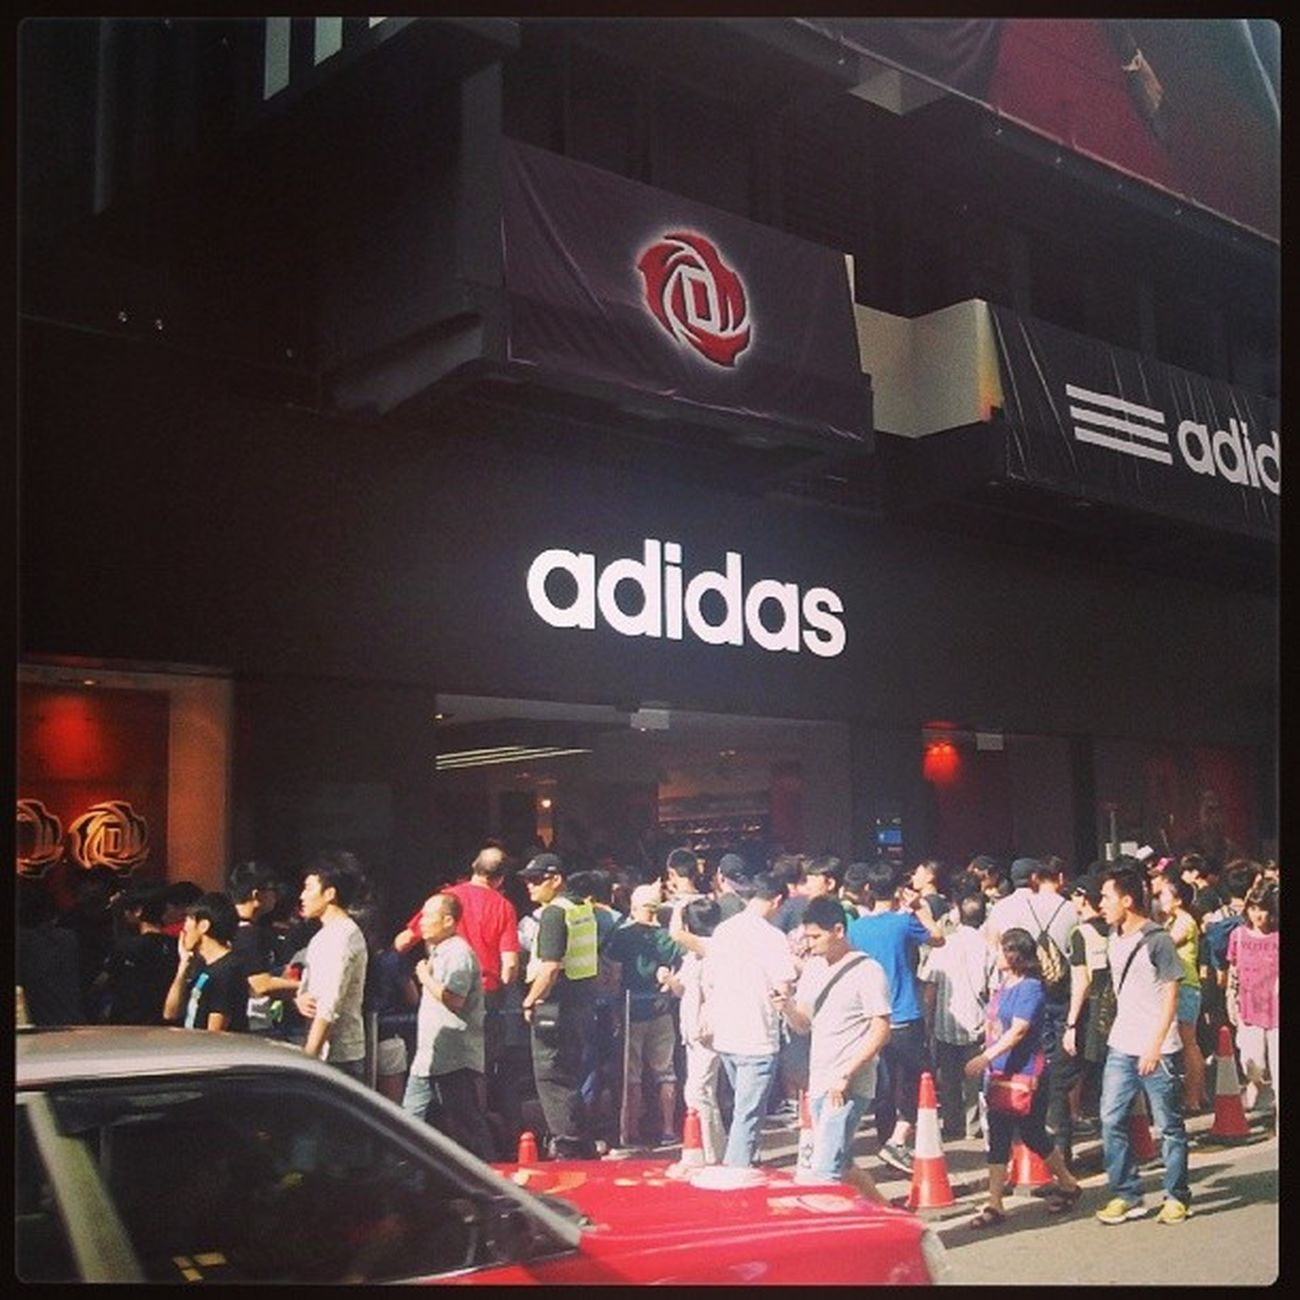 Derrick Rose is coming to town! DerrickRose Adidas